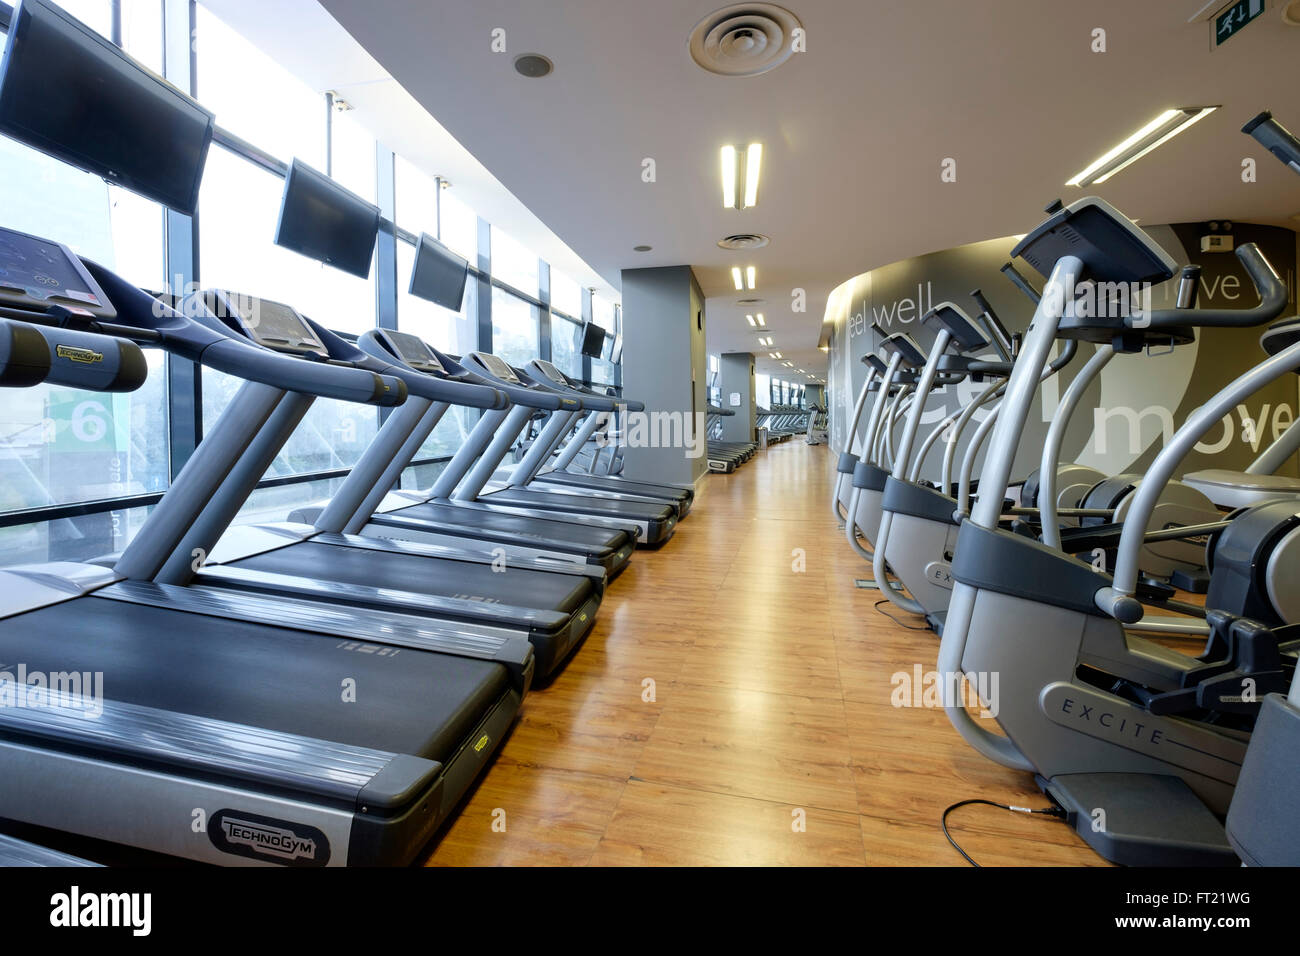 Rows of treadmills and other exercise machines at an empty gym - Stock Image